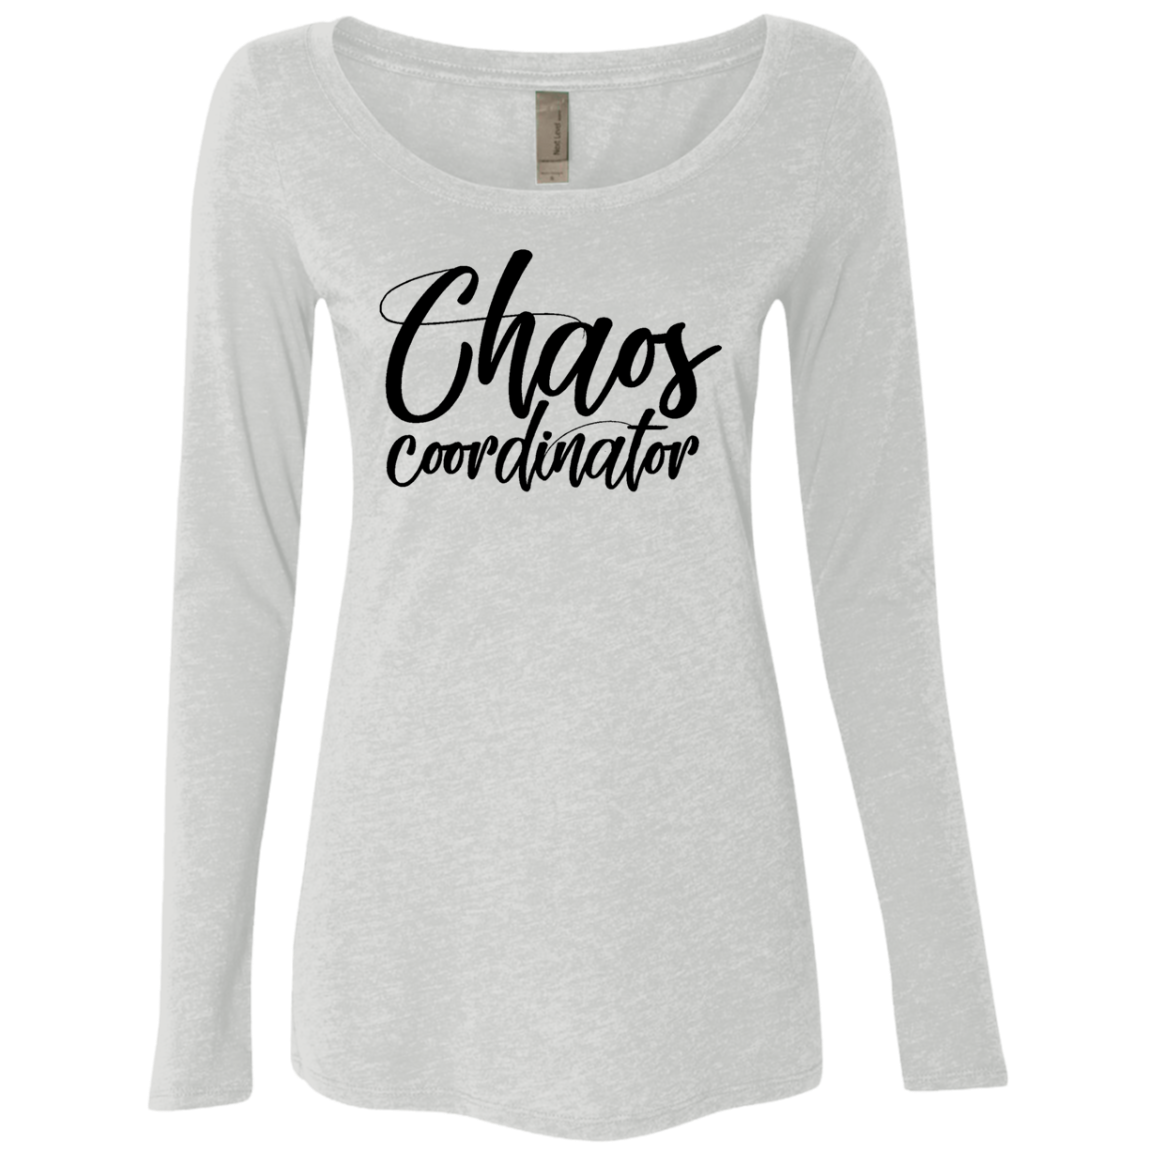 Chaos Coordinator Women's Long Sleeve Tee - Trendy Tees